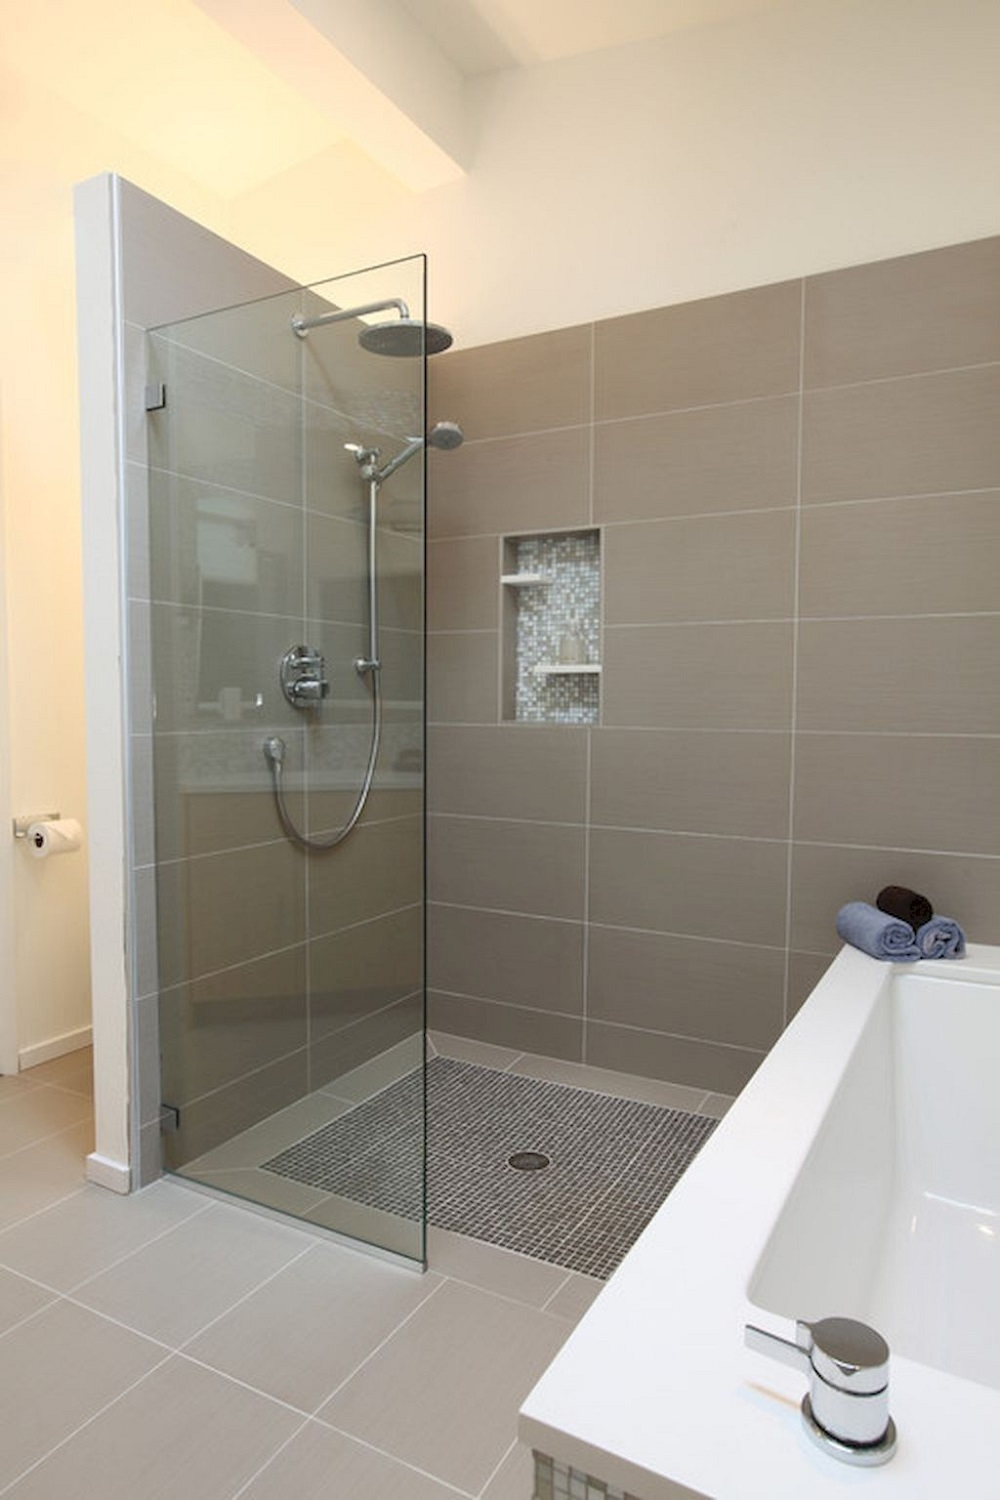 wb17 ideas and tips for walk-in showers (cost, size and more)